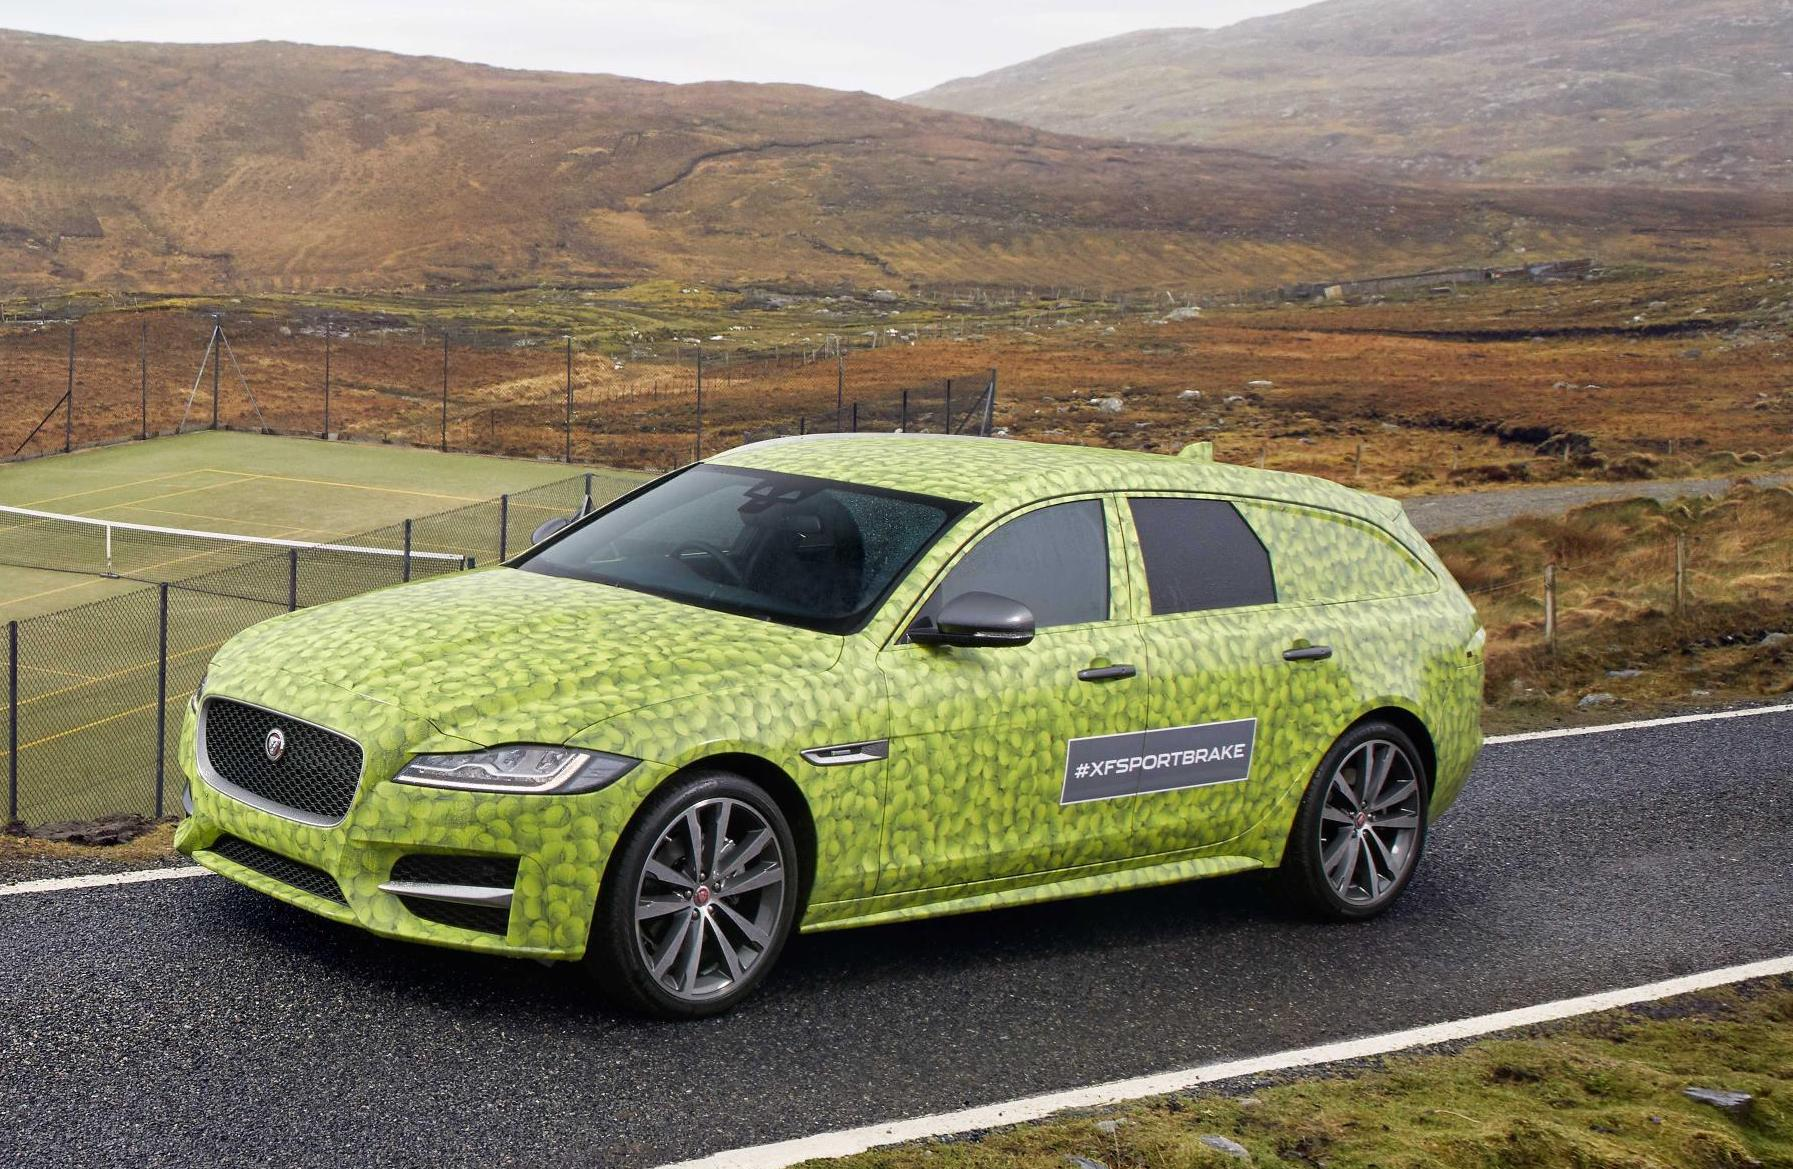 2018 Jaguar XF Sportbrake debut coincides with XF's 10th birthday